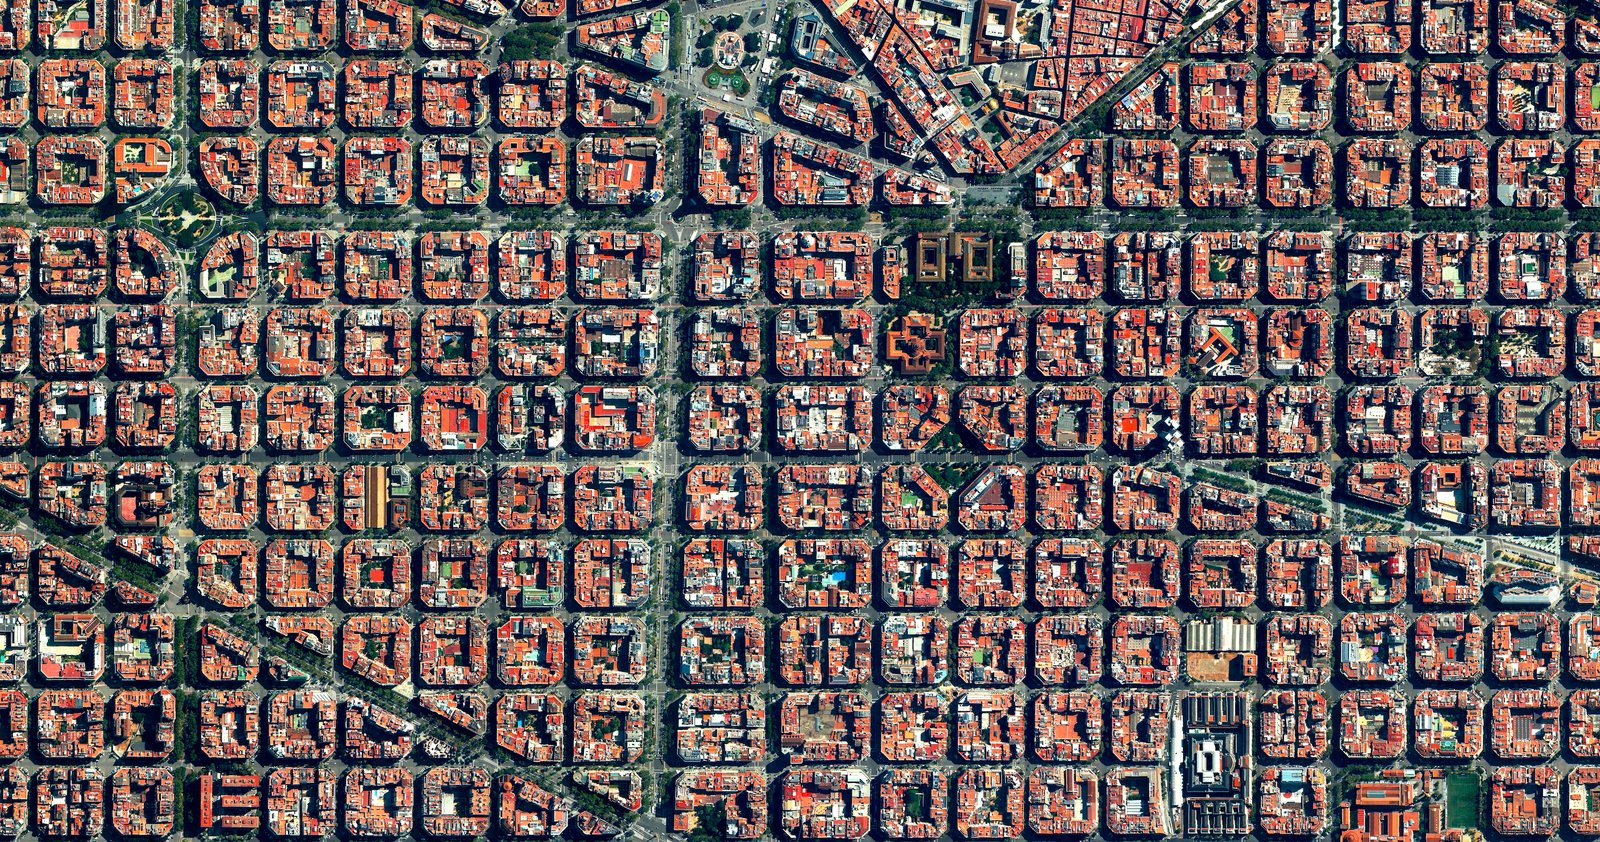 Clusters of housing with communal courtyards are placed along a strict grid pattern in Barcelona's Eixample district, shown here. Reprinted with permission from Overview by Benjamin Grant, copyright (c) 2016. Published by Amphoto Books, a division of Penguin Random House, Inc. Images (c) 2016 by DigitalGlobe, Inc.  Ever Wondered About the View from Space? by Aileen Kwun